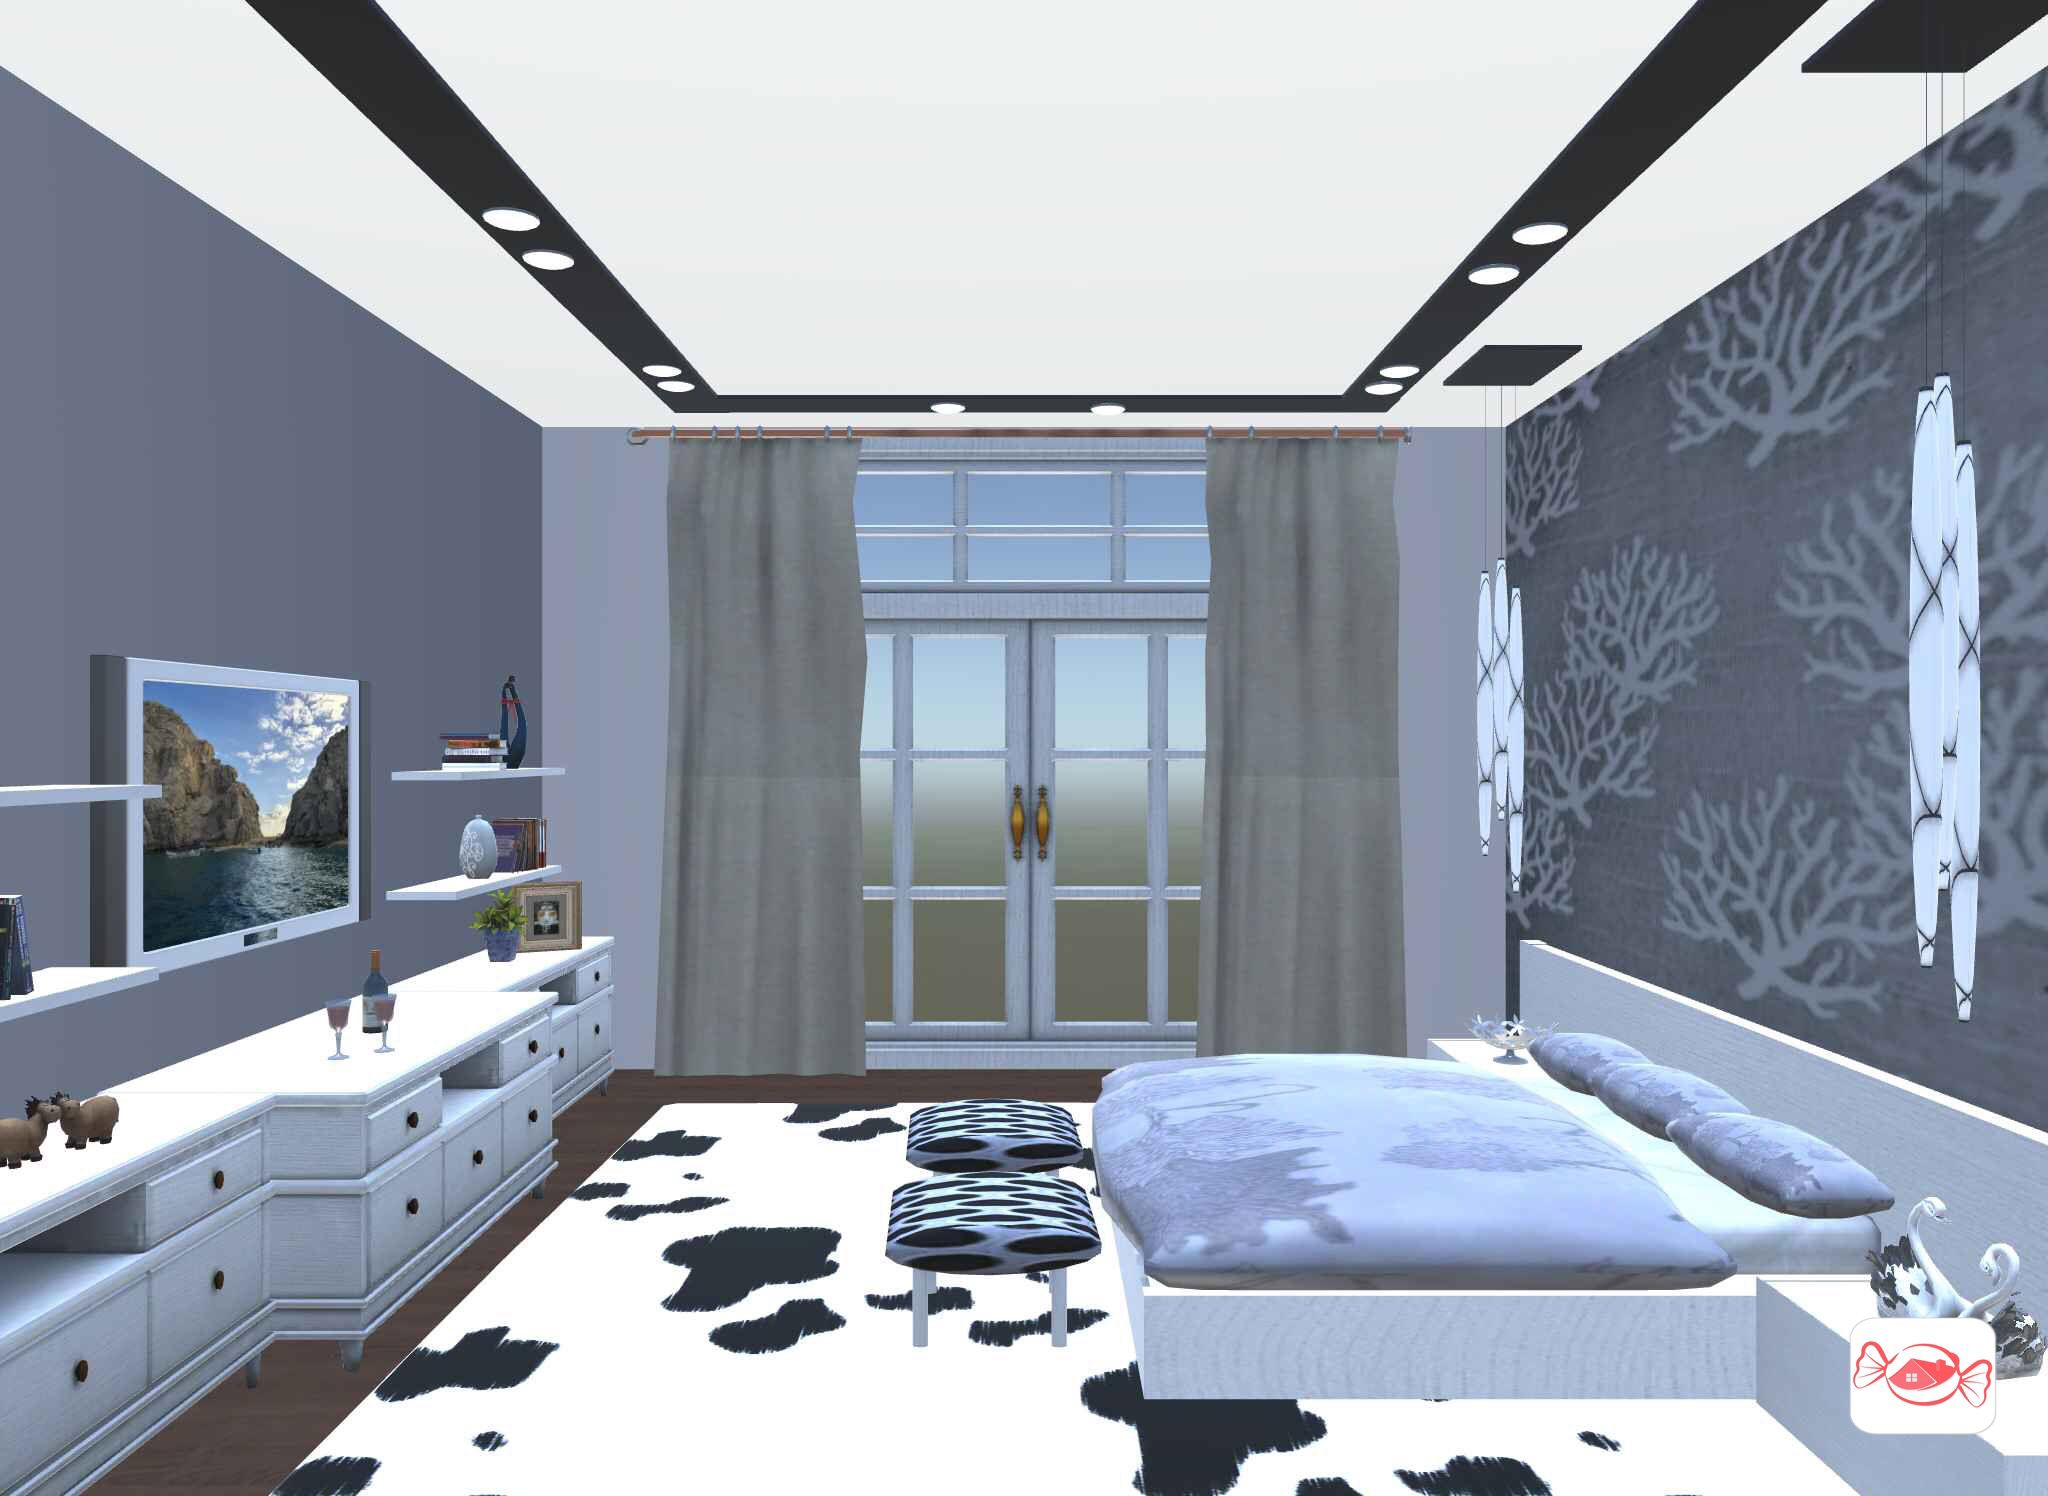 Luxury bedroom created with Home Sweet Home 3D app